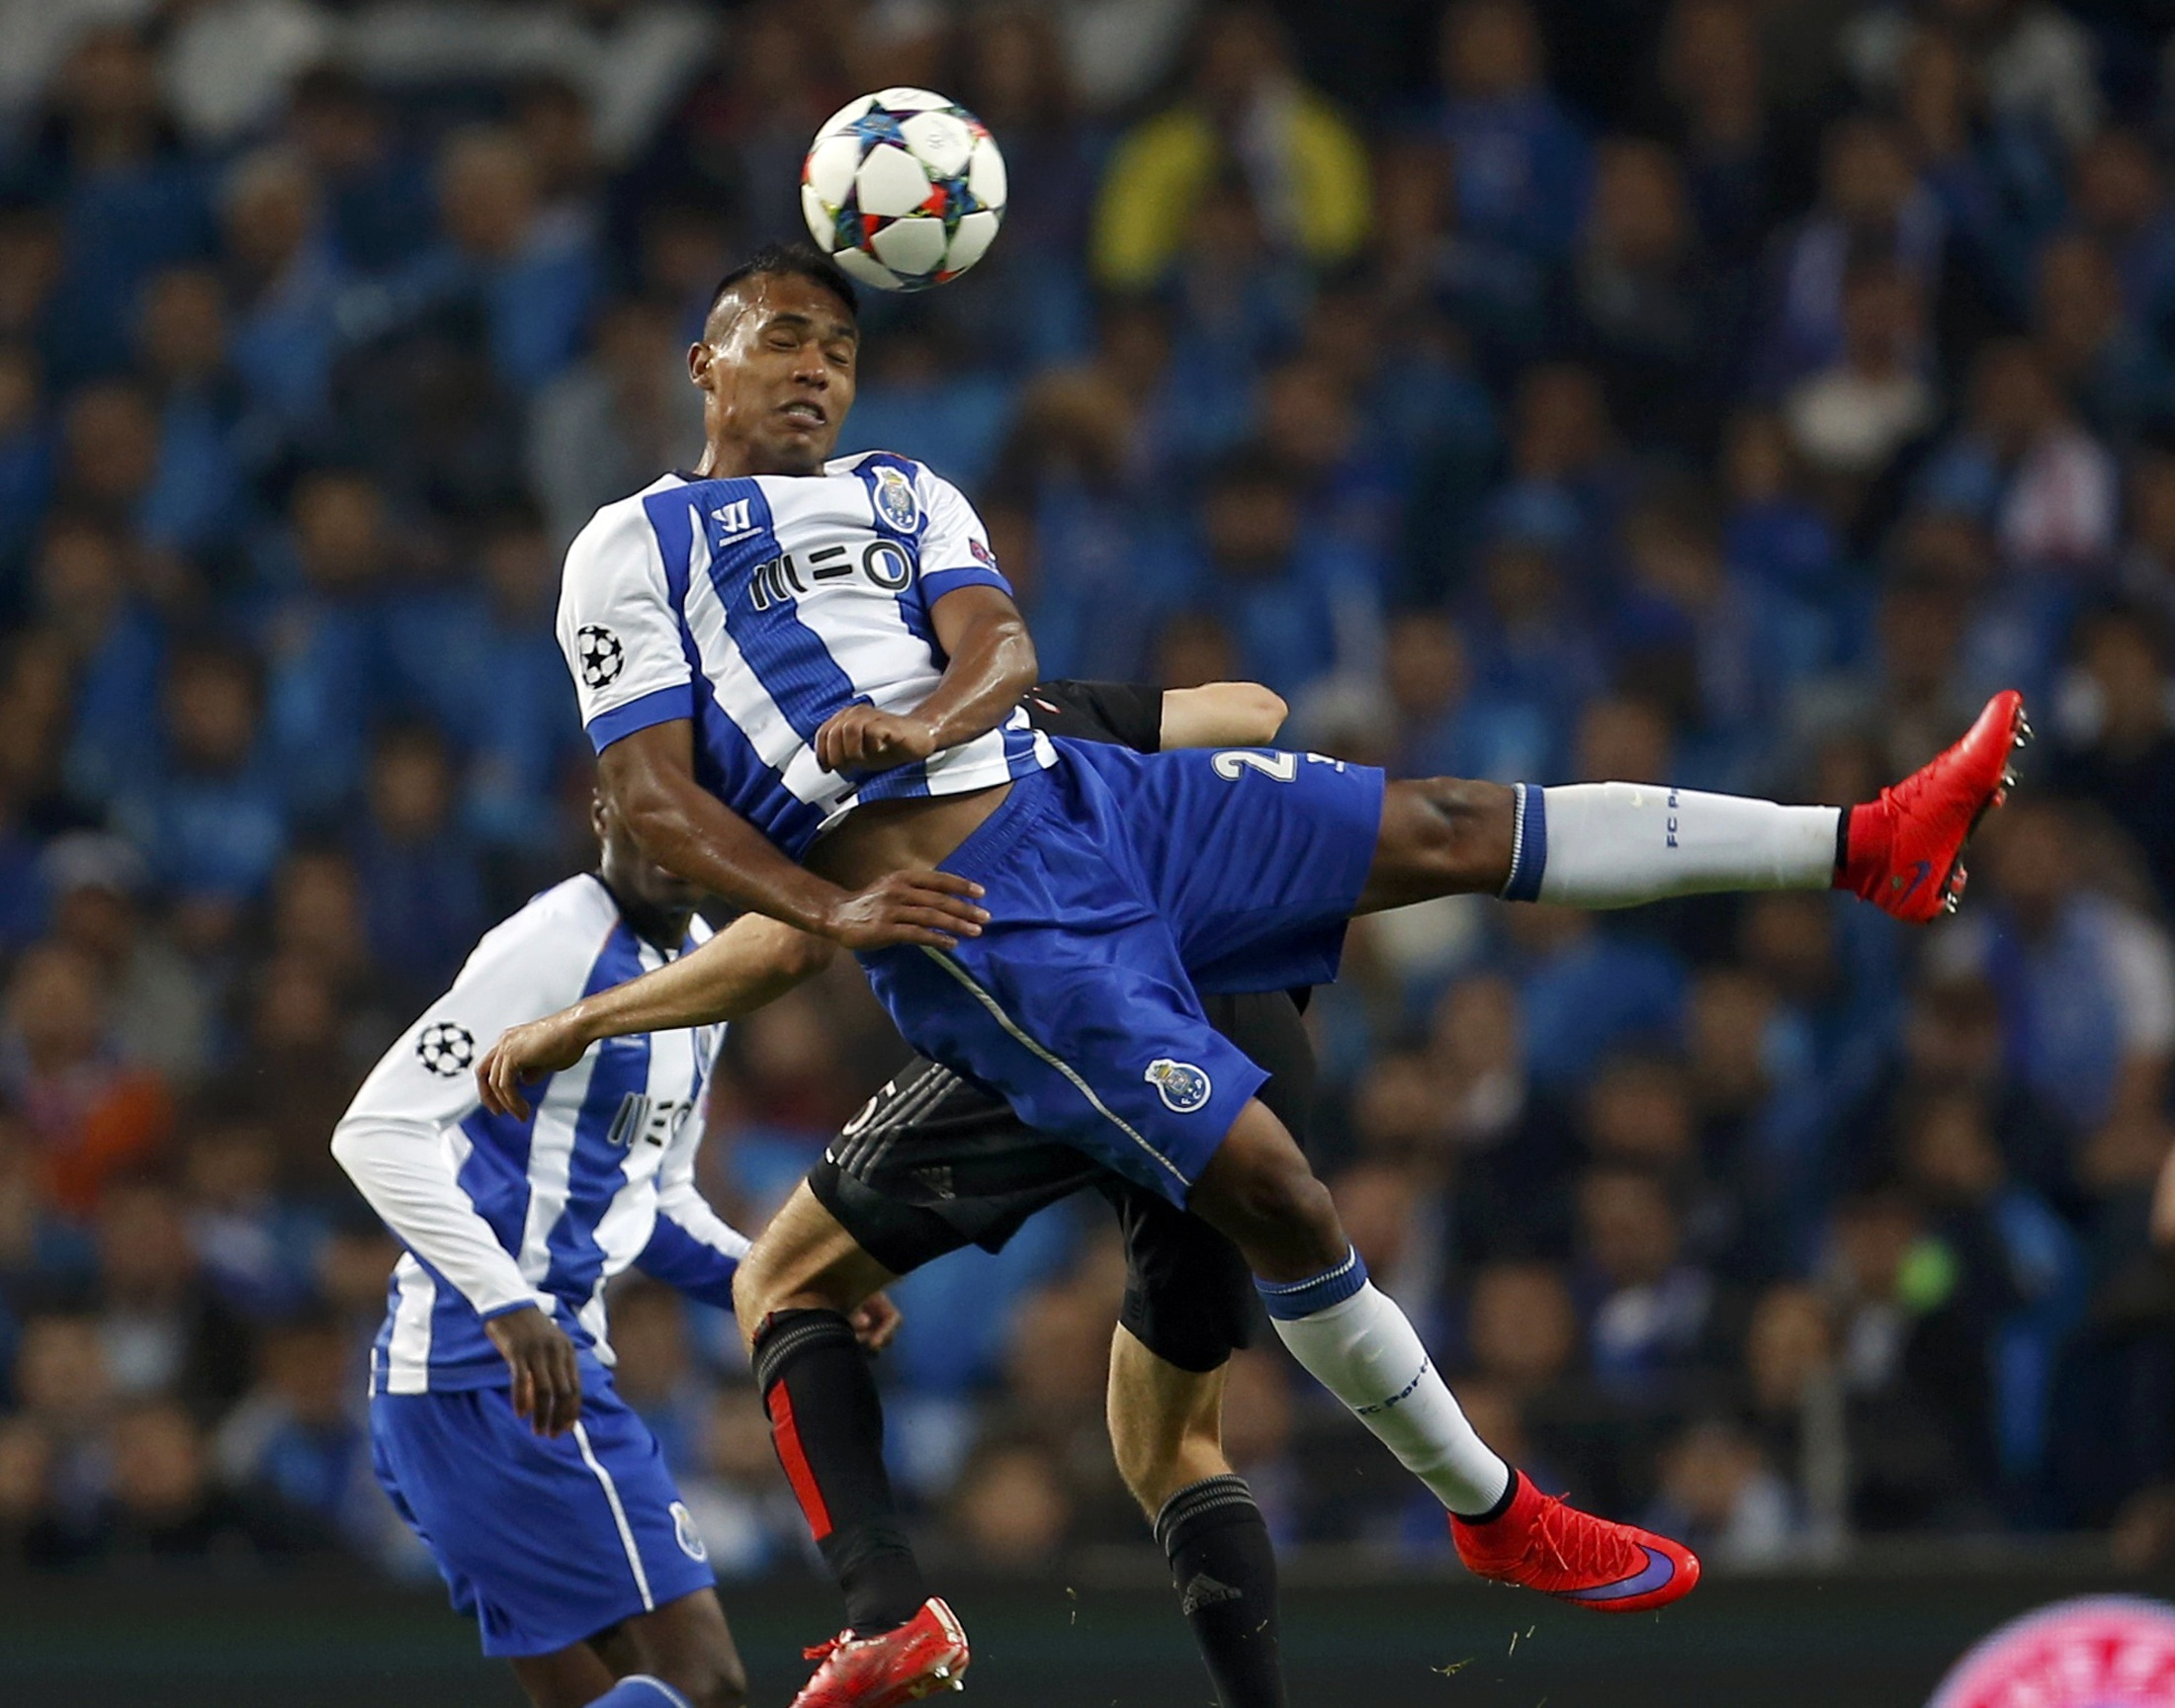 Porto poised for semis after stunning Bayern